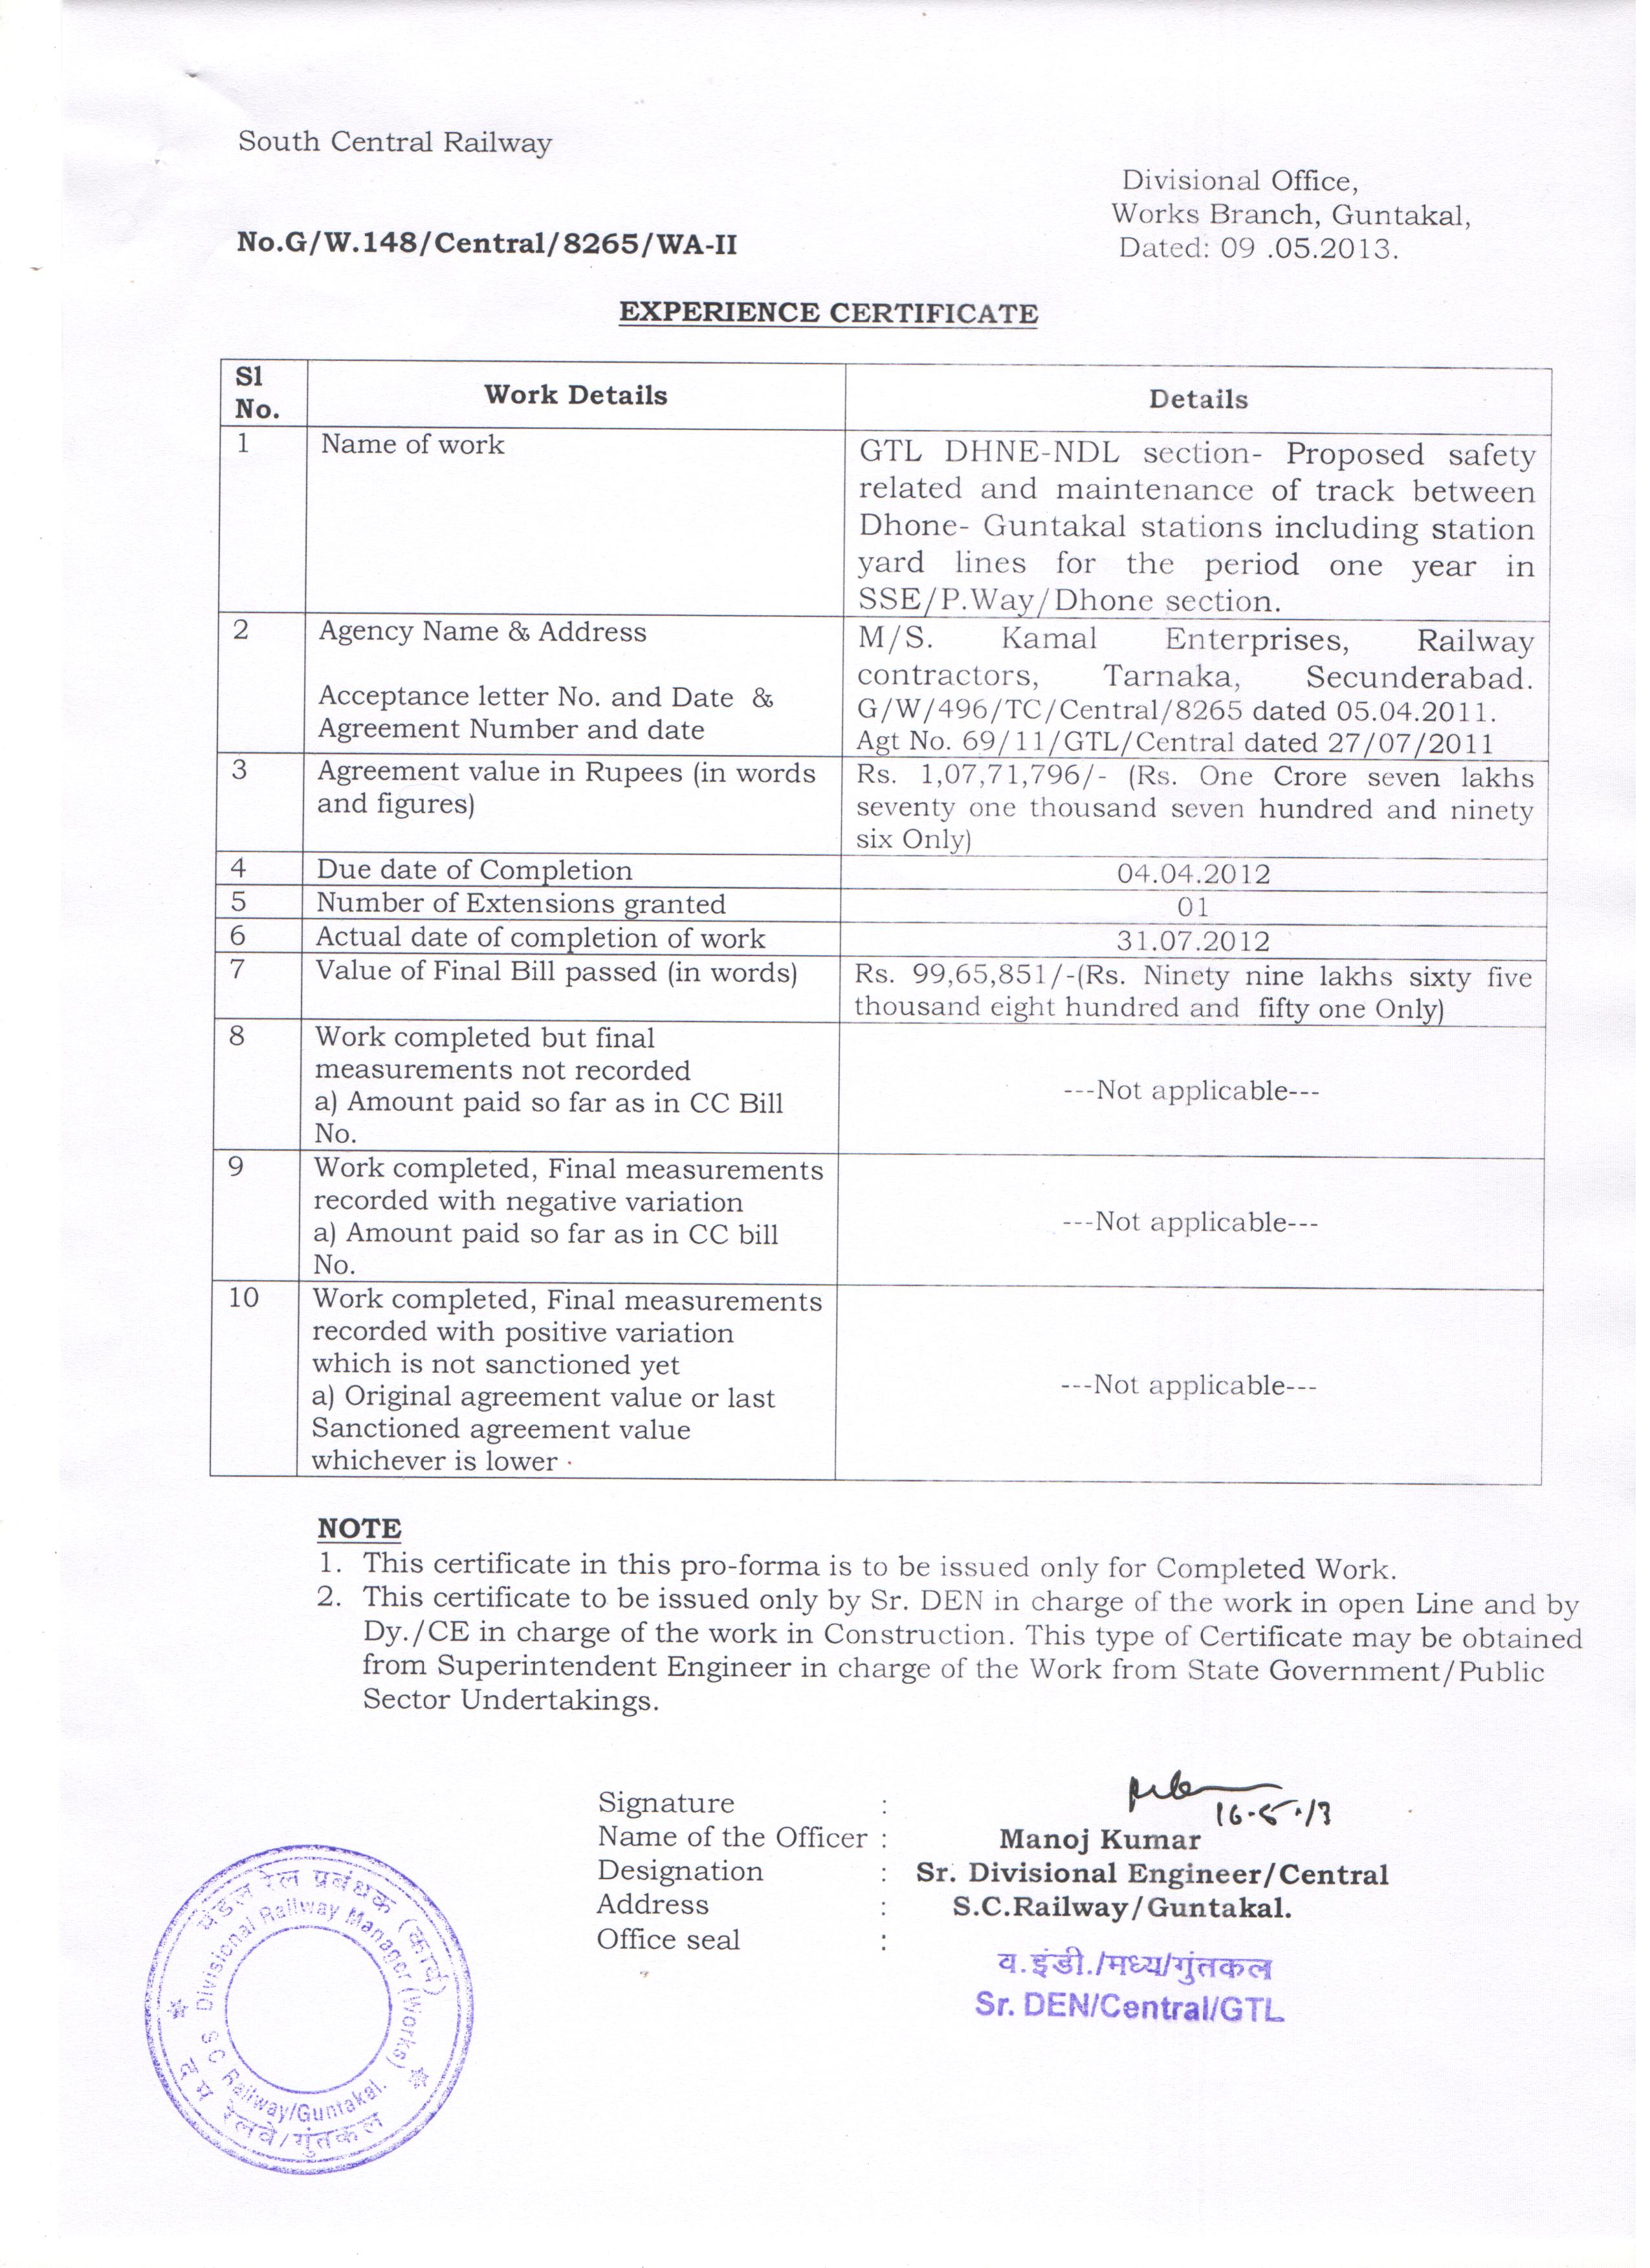 Scr Details Of Experience Certificate Issued